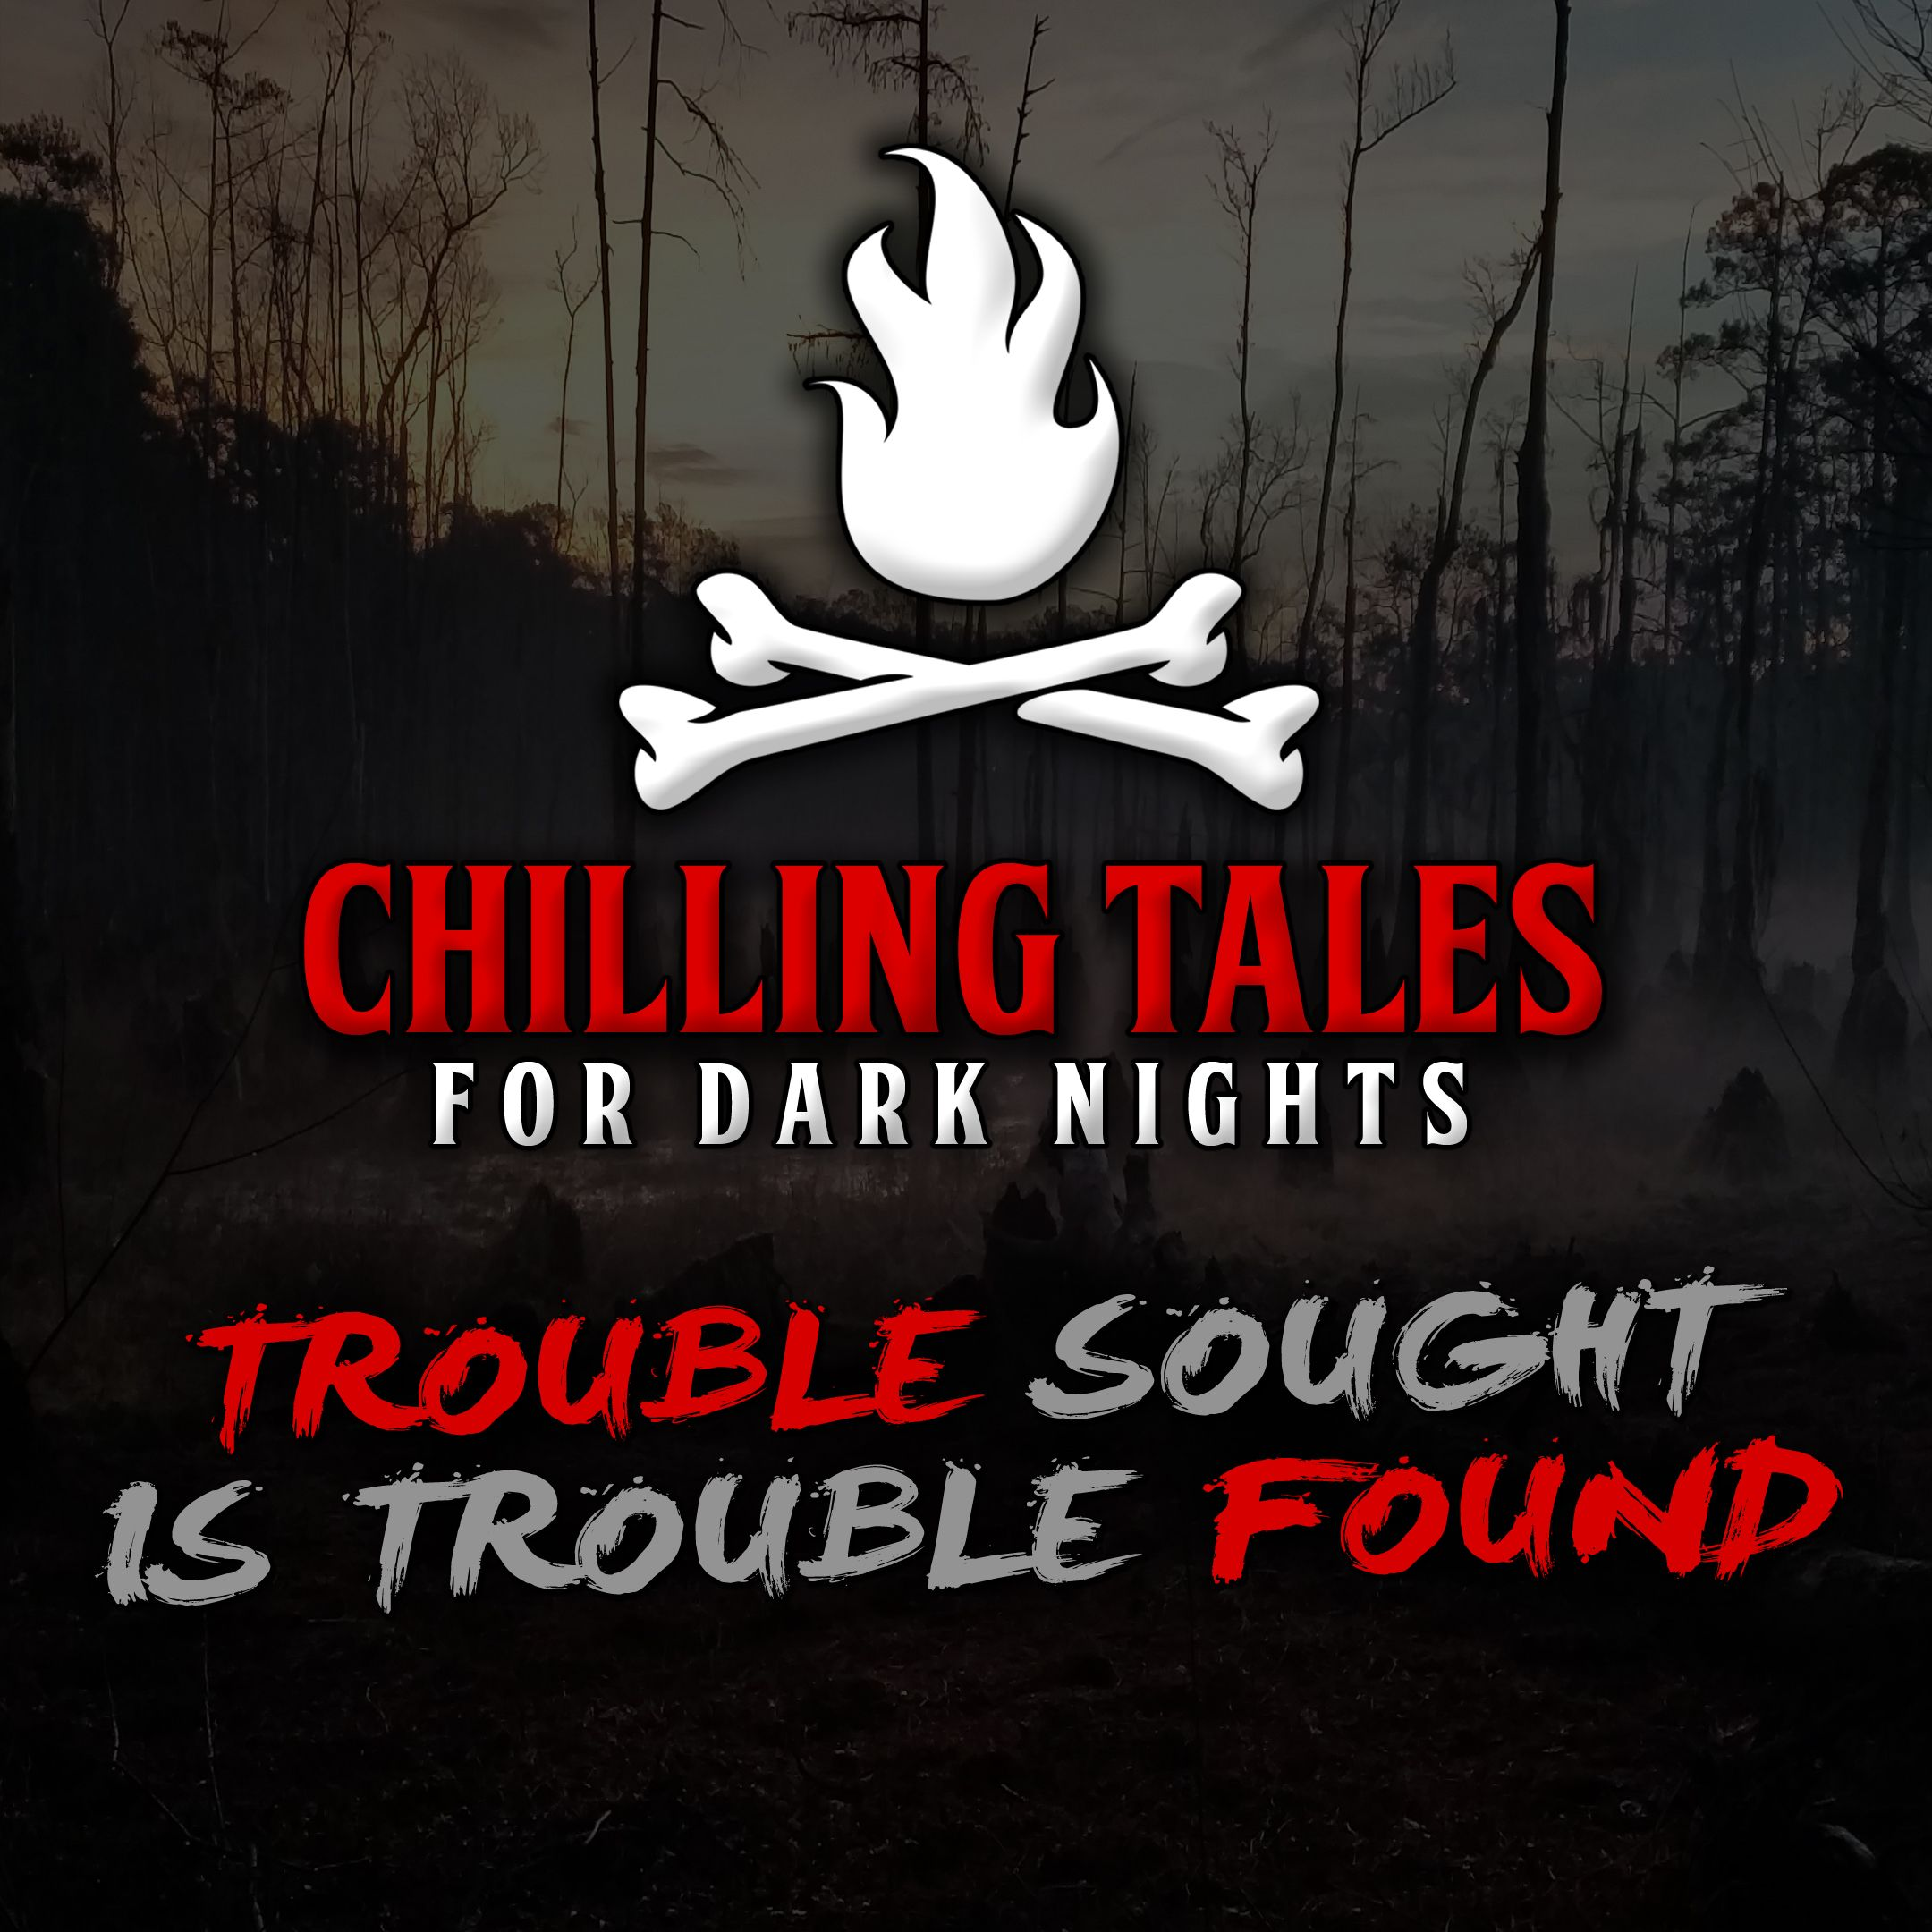 34: Trouble Sought is Trouble Found – Chilling Tales for Dark Nights